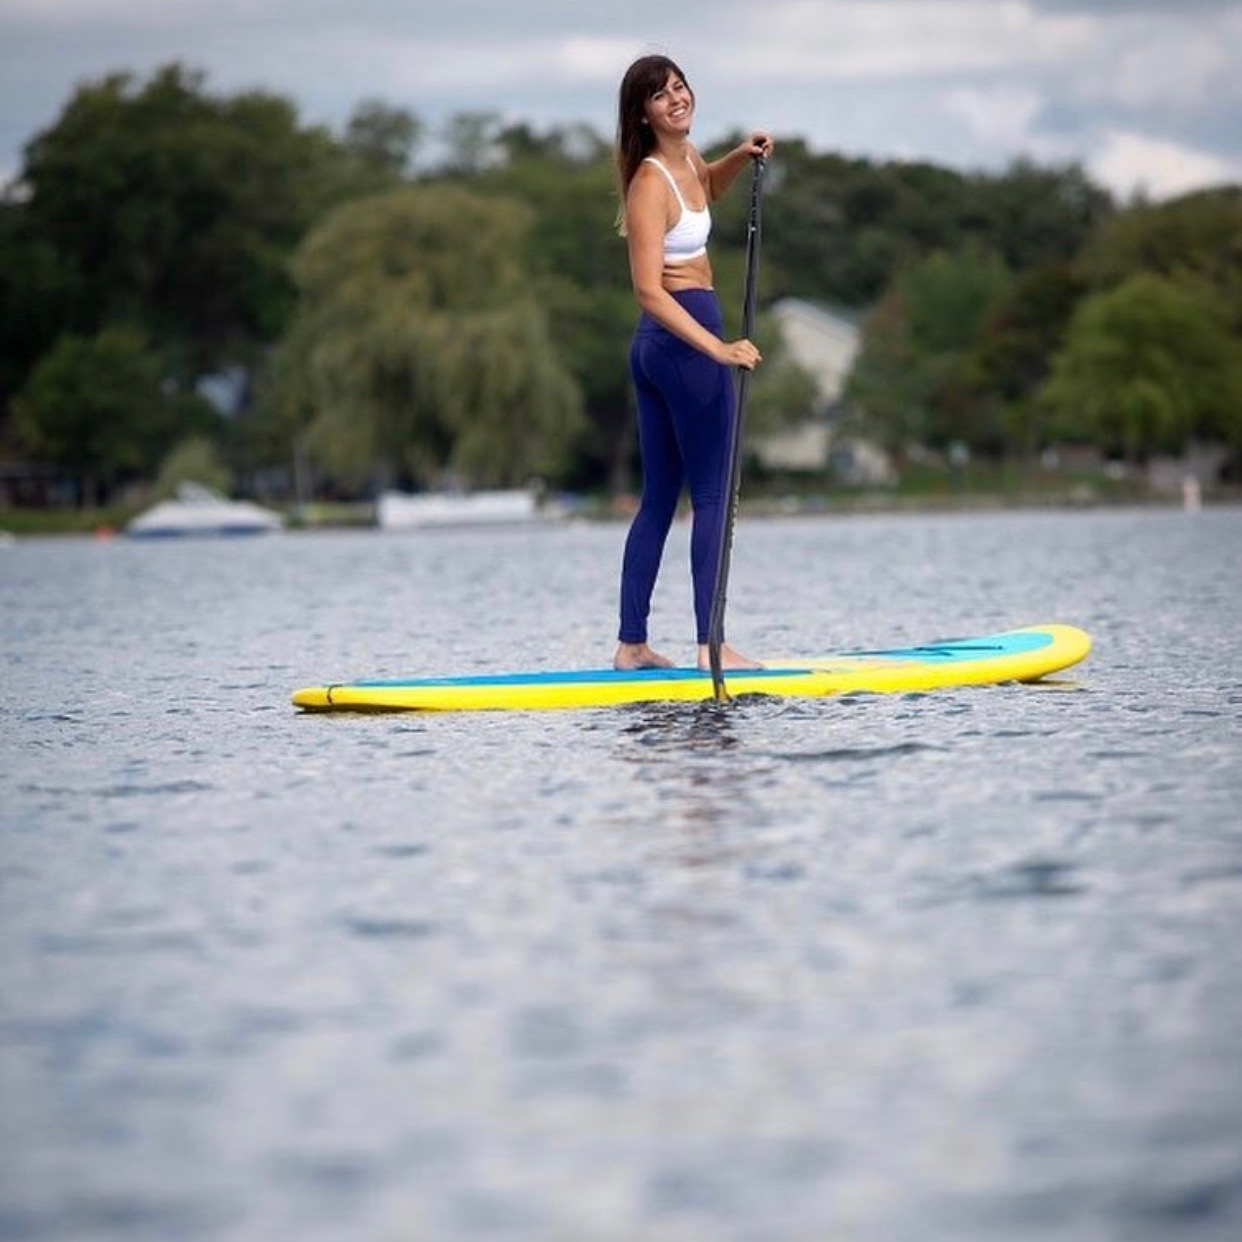 Stand Up Paddle Boarding - 1:00 pm to 2:00 pm